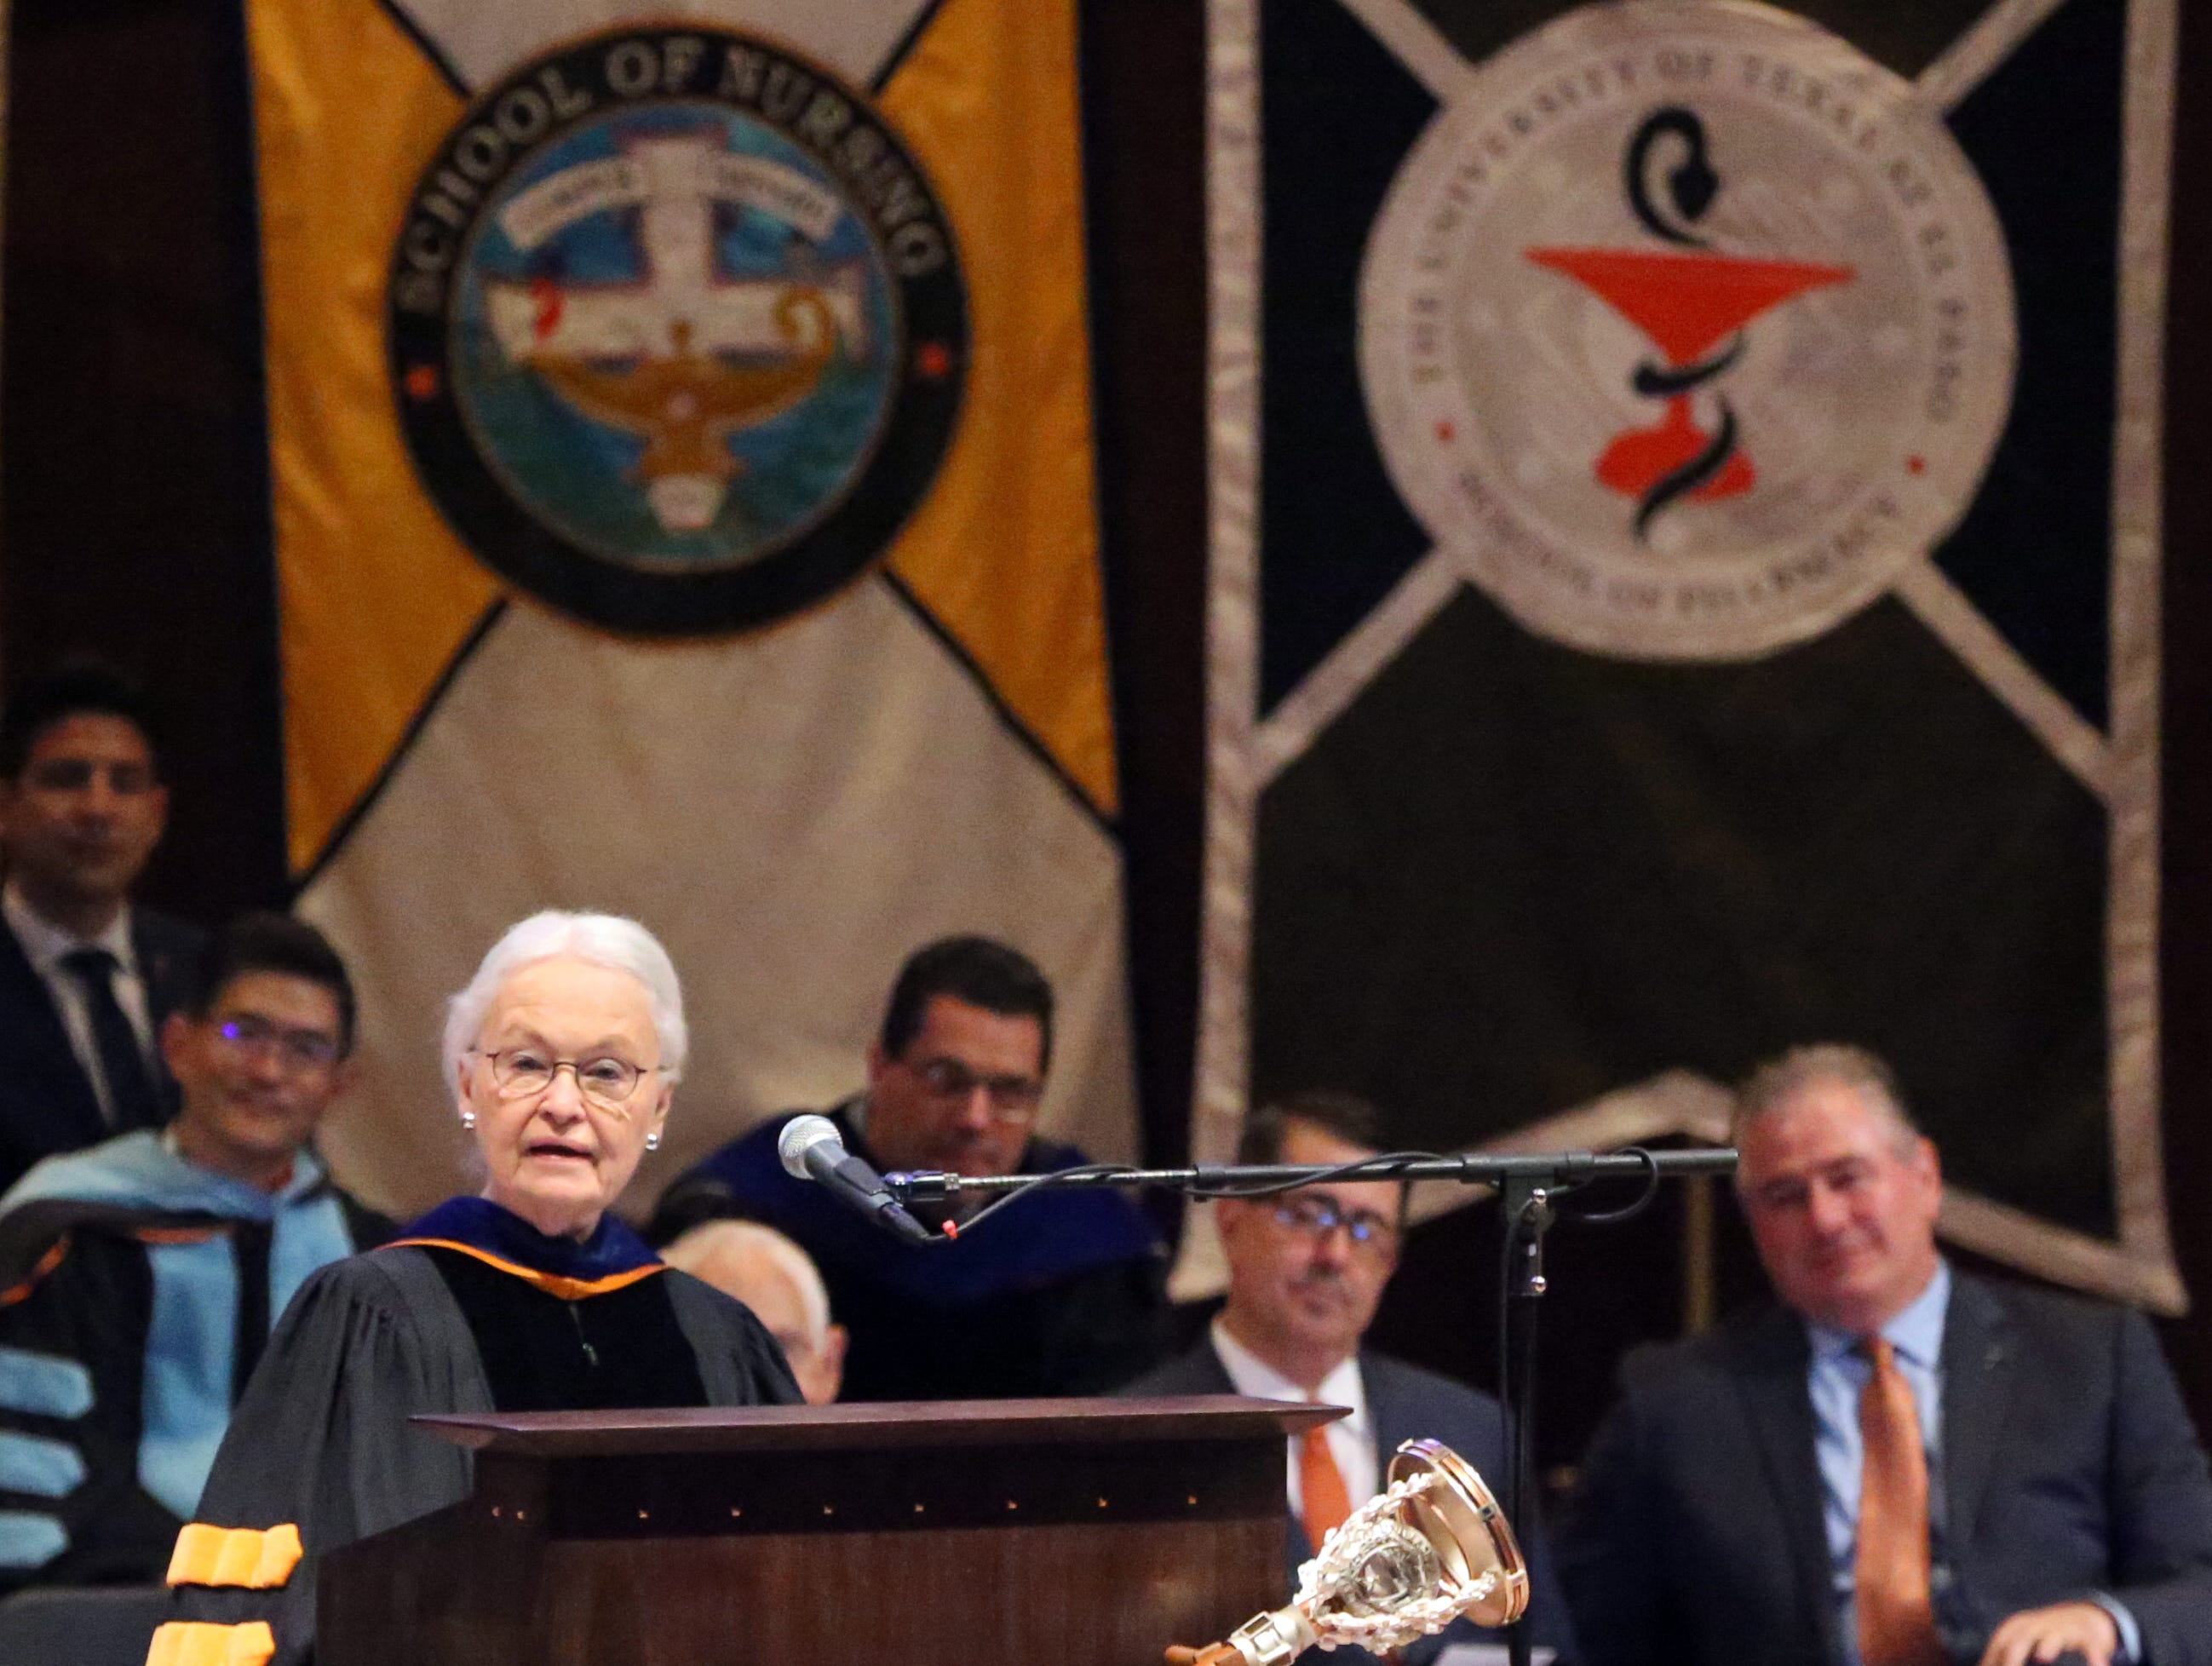 UTEP president Diana Natalicio gives her remarks at the 2018 Fall Convocation Thursday at the Fox Fine Arts Recital Hall on campus